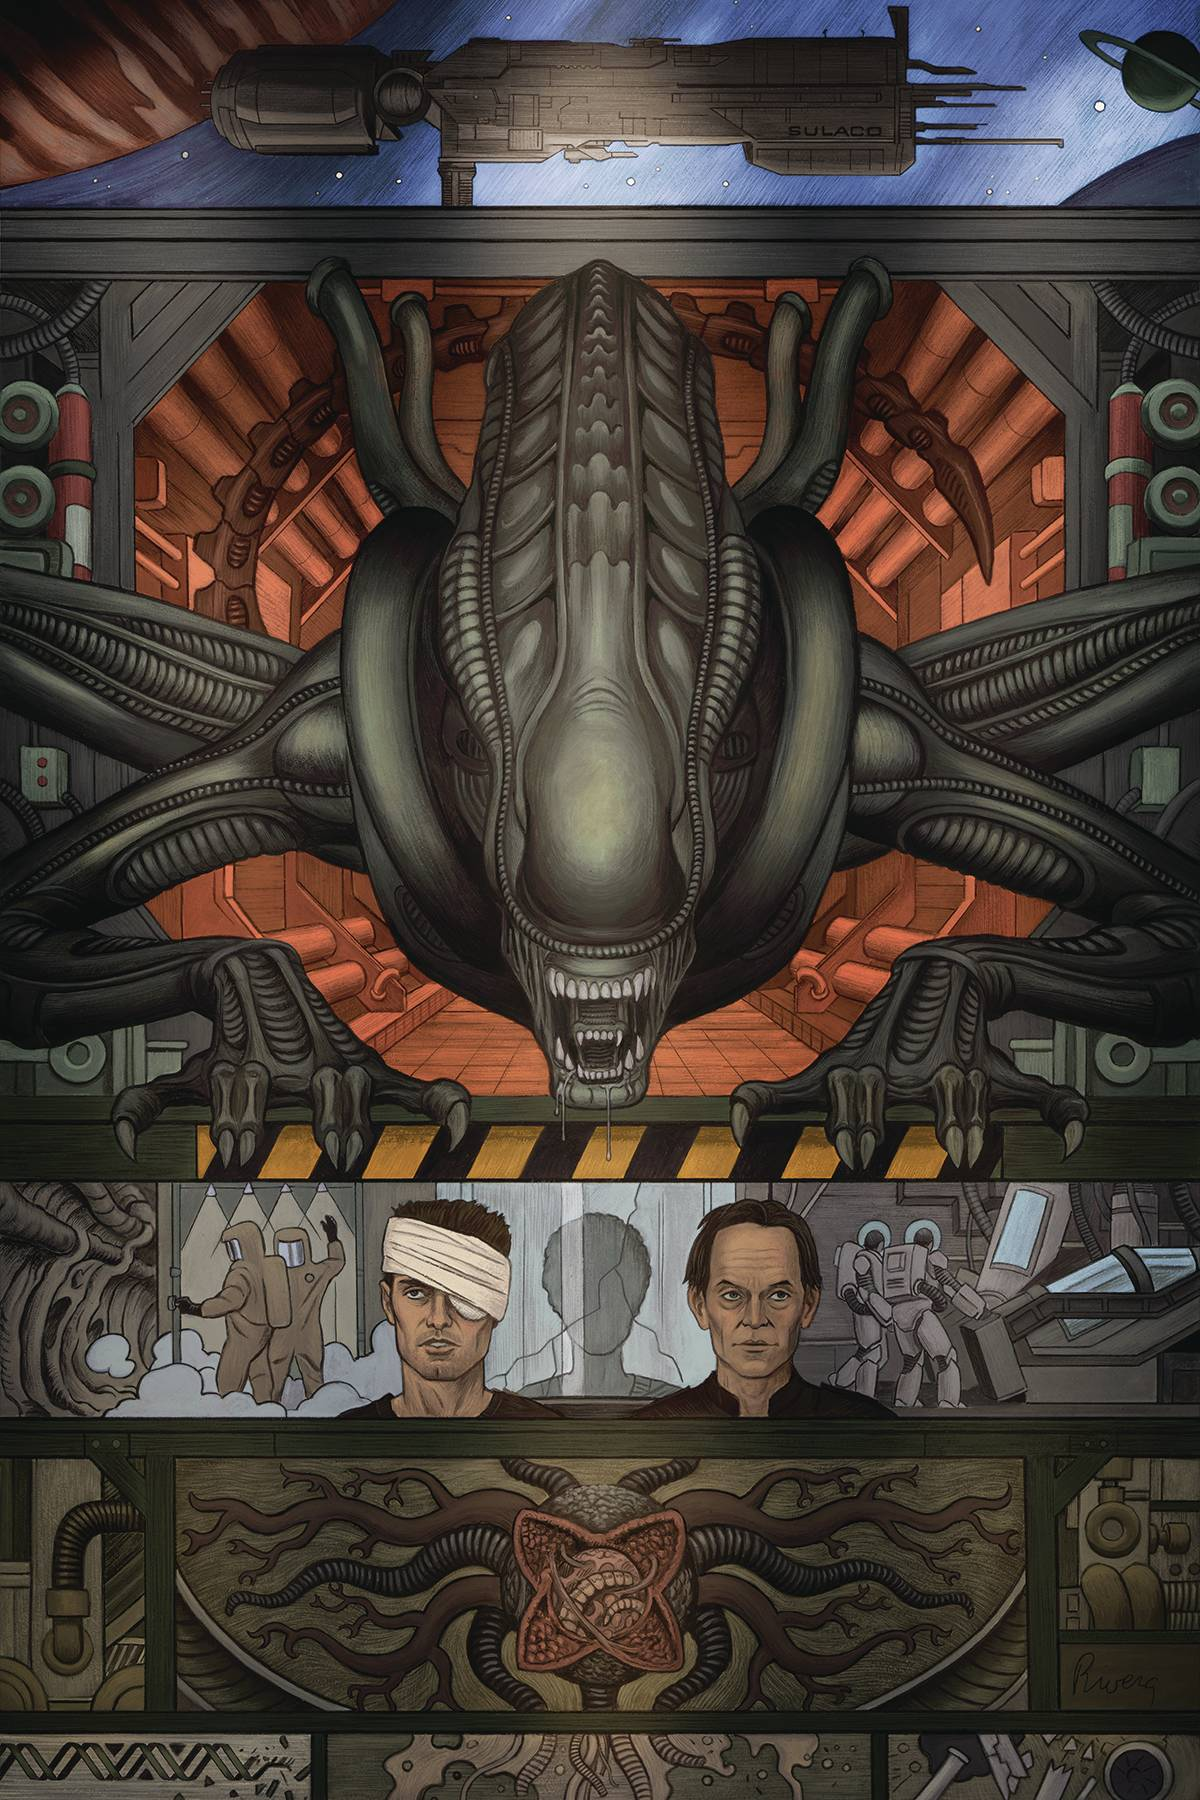 WILLIAM GIBSON ALIEN 3 #1